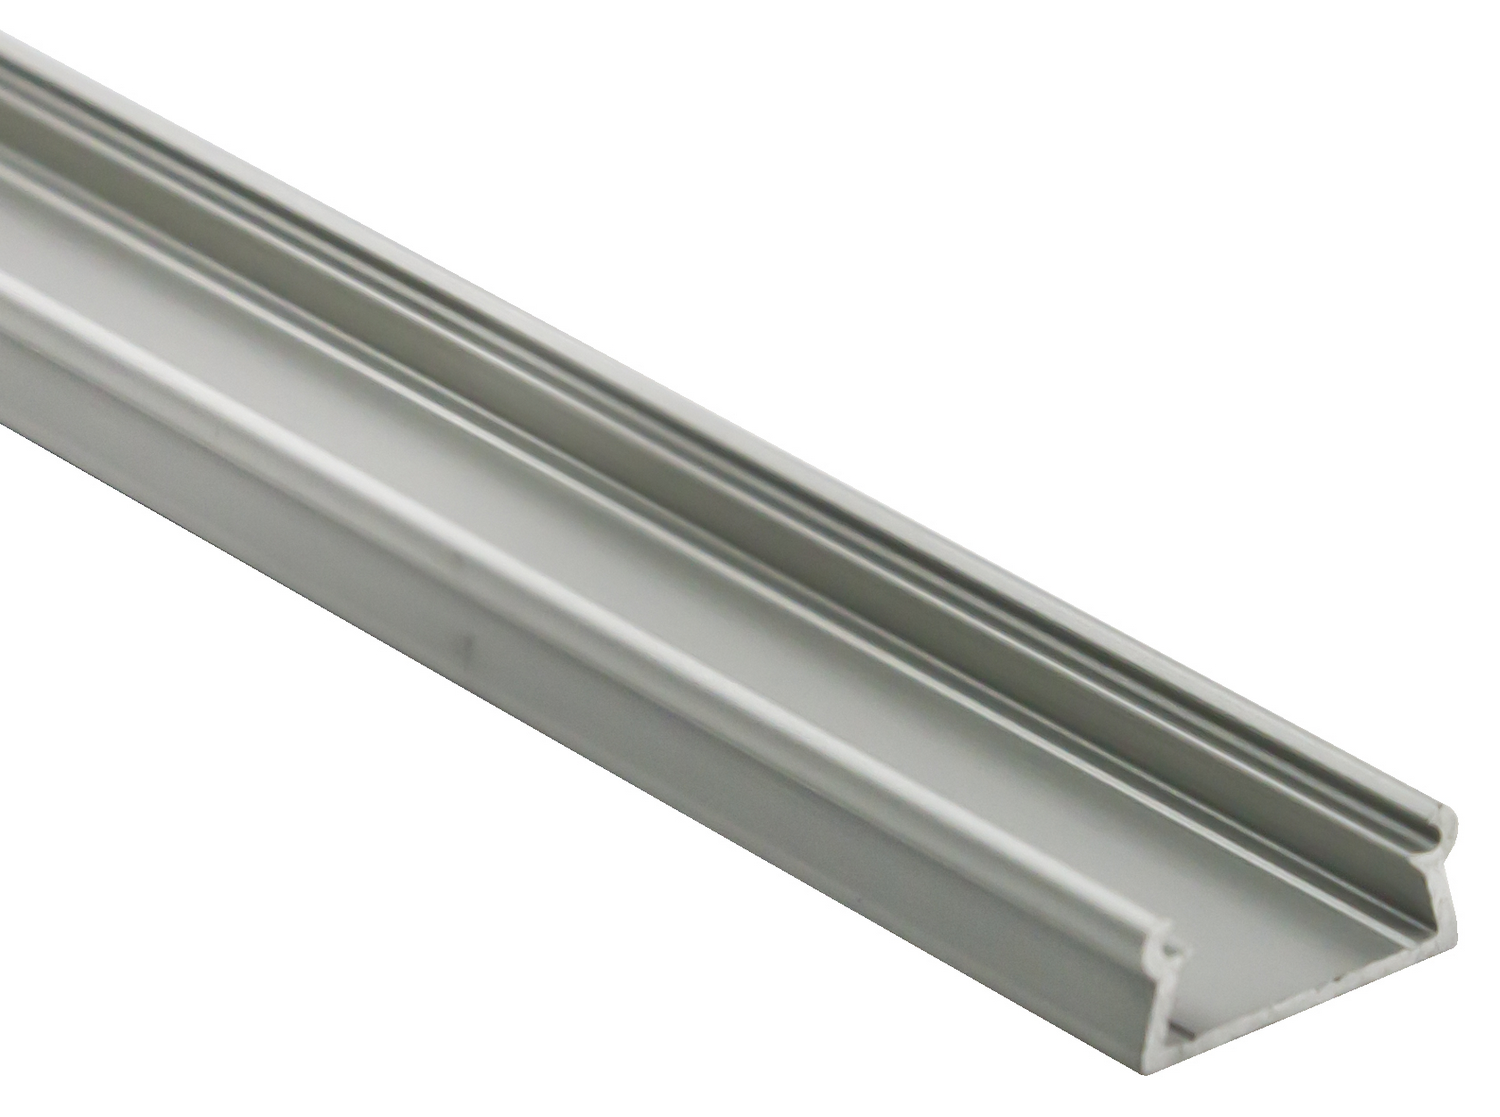 Economy Extrusion from the Surface Mount Extrusion collection by American Lighting EE1 AAFR 1M